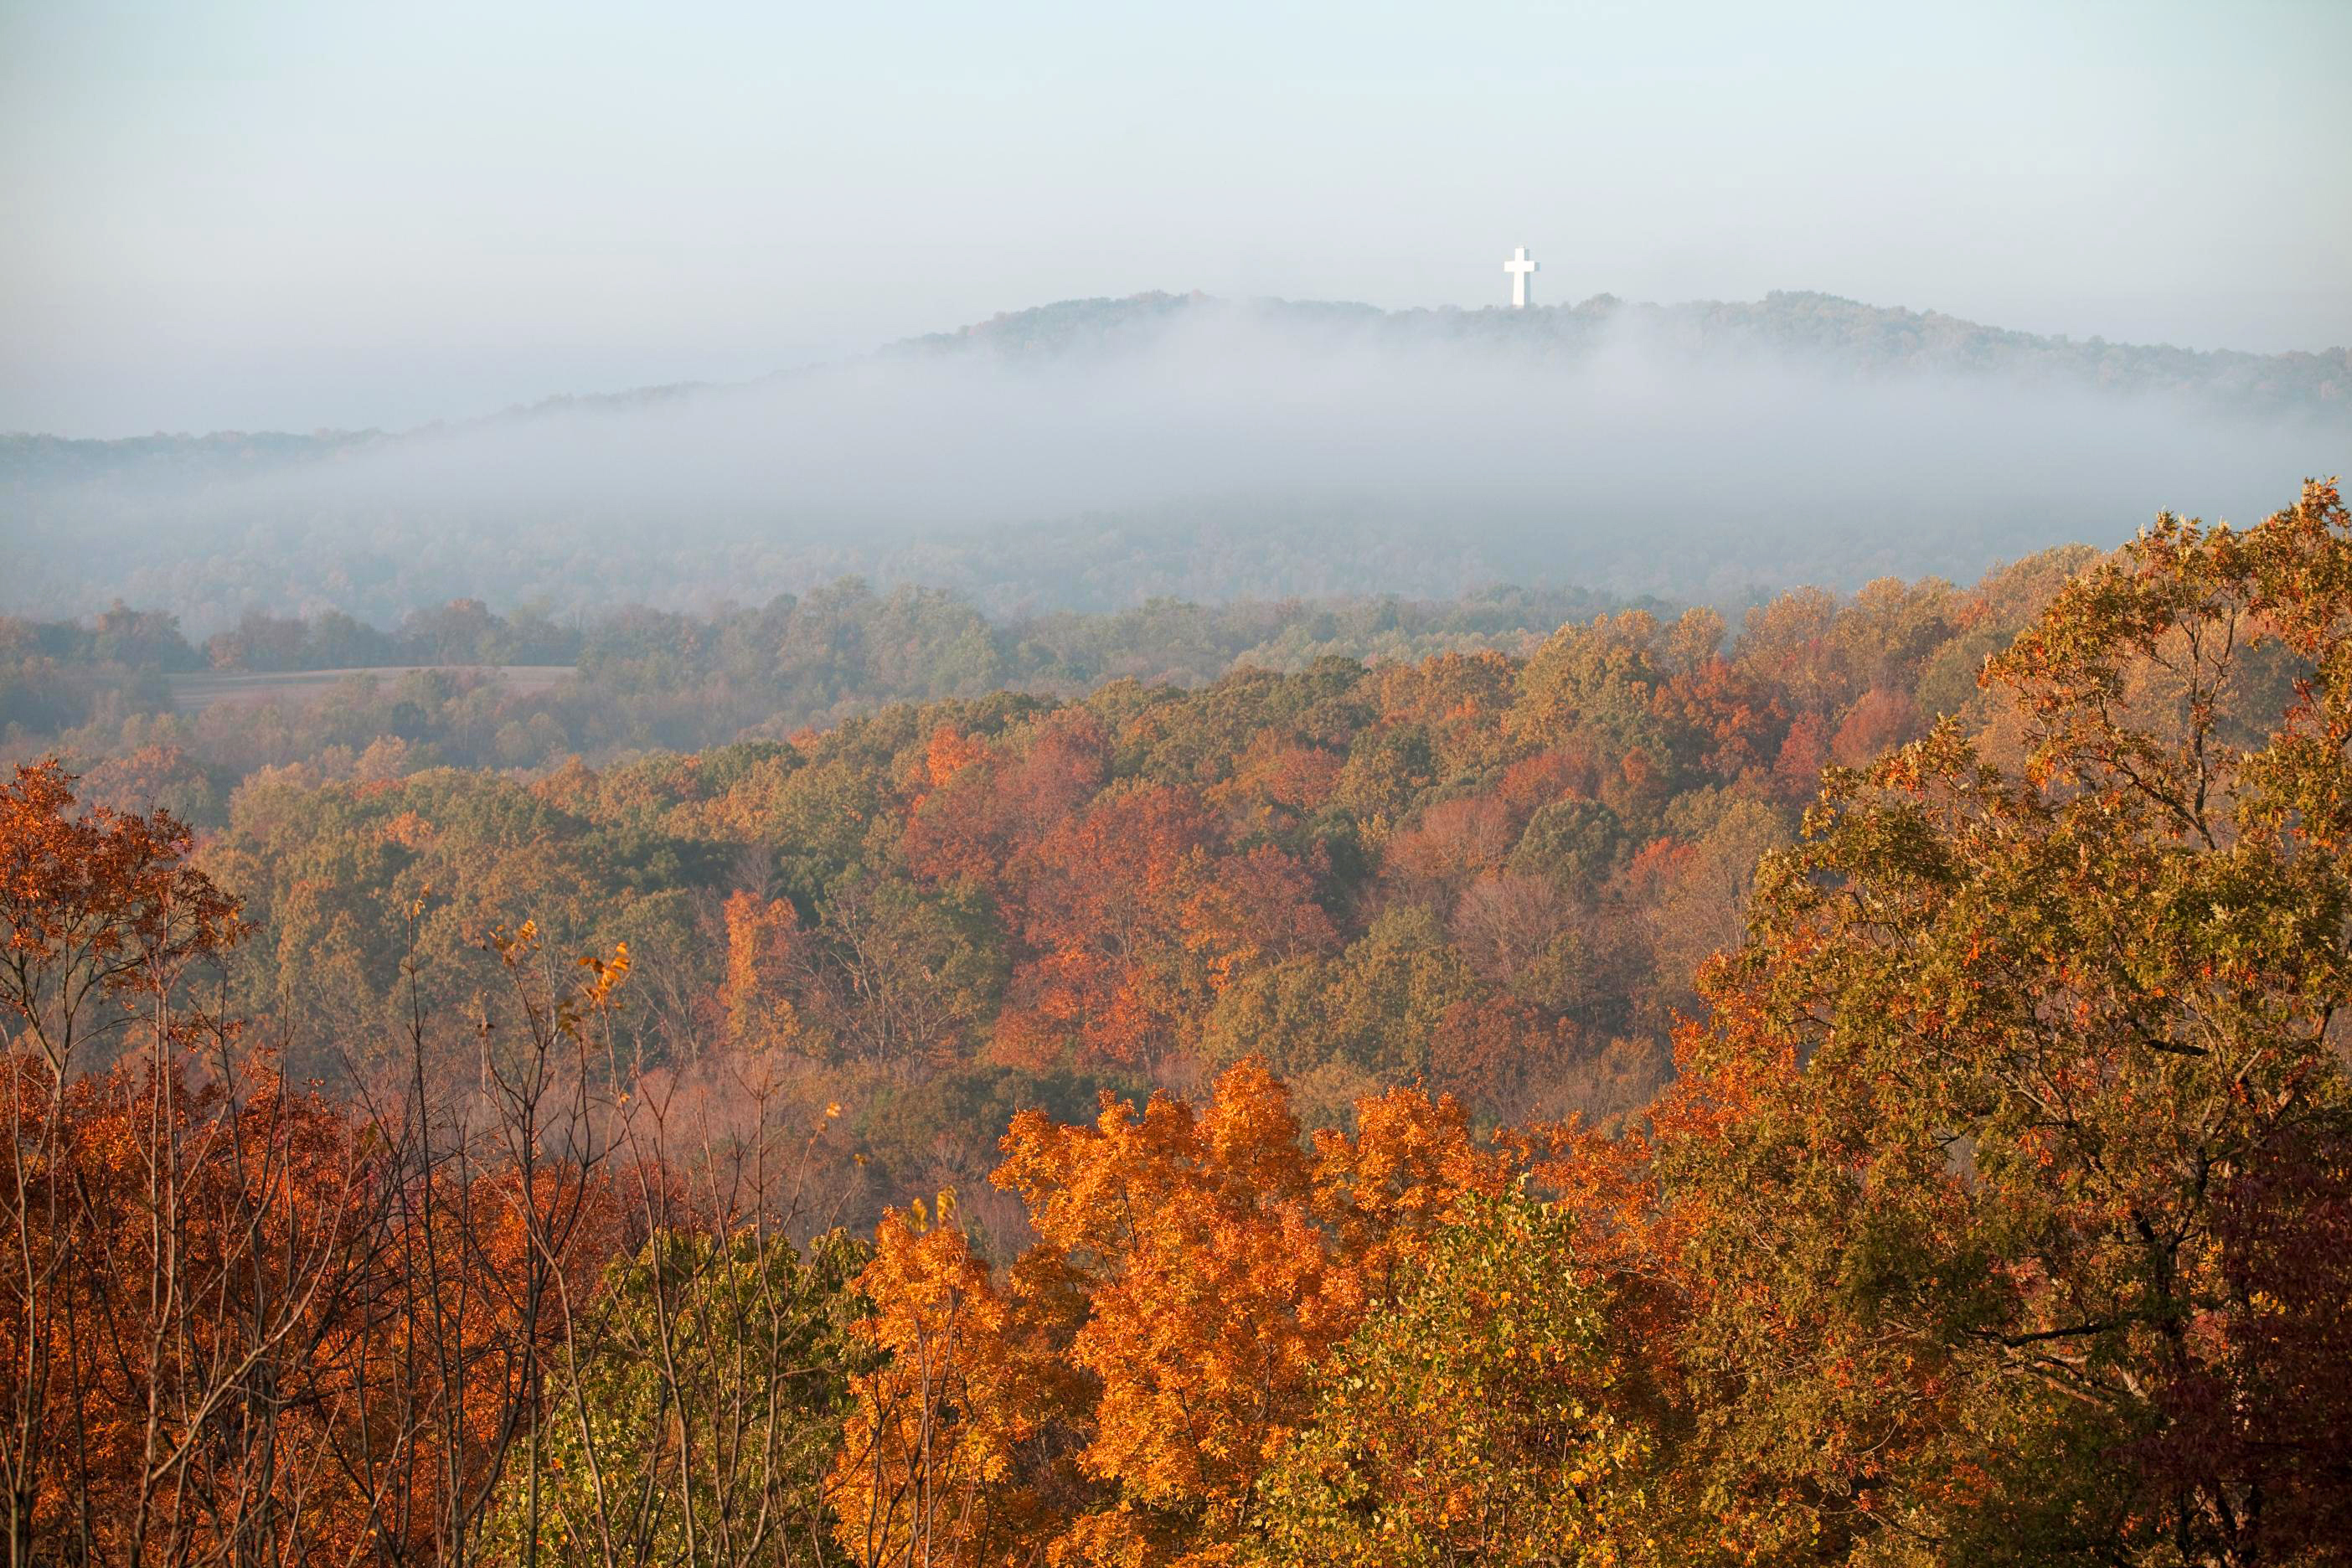 The 111-foot-tall Bald Knob Cross of Peace stands across the valley from a lookout point in Alto Pass.